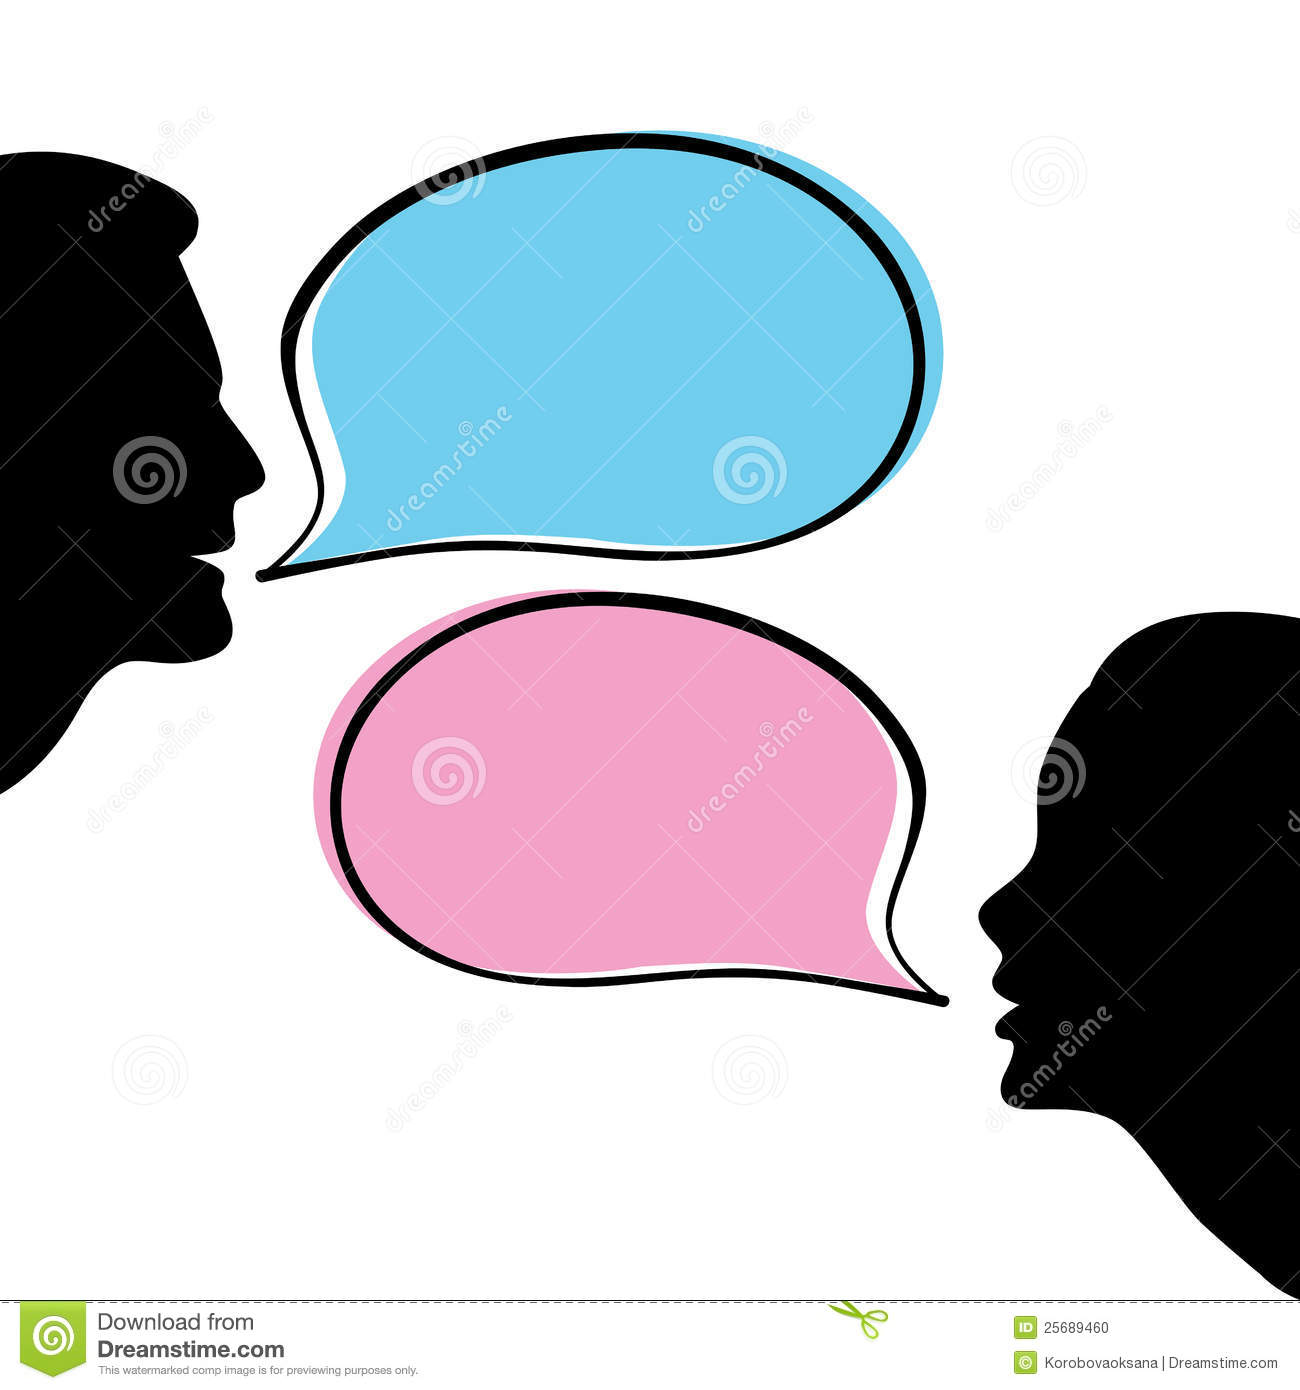 Dialogue clipart 20 free Cliparts   Download images on ...